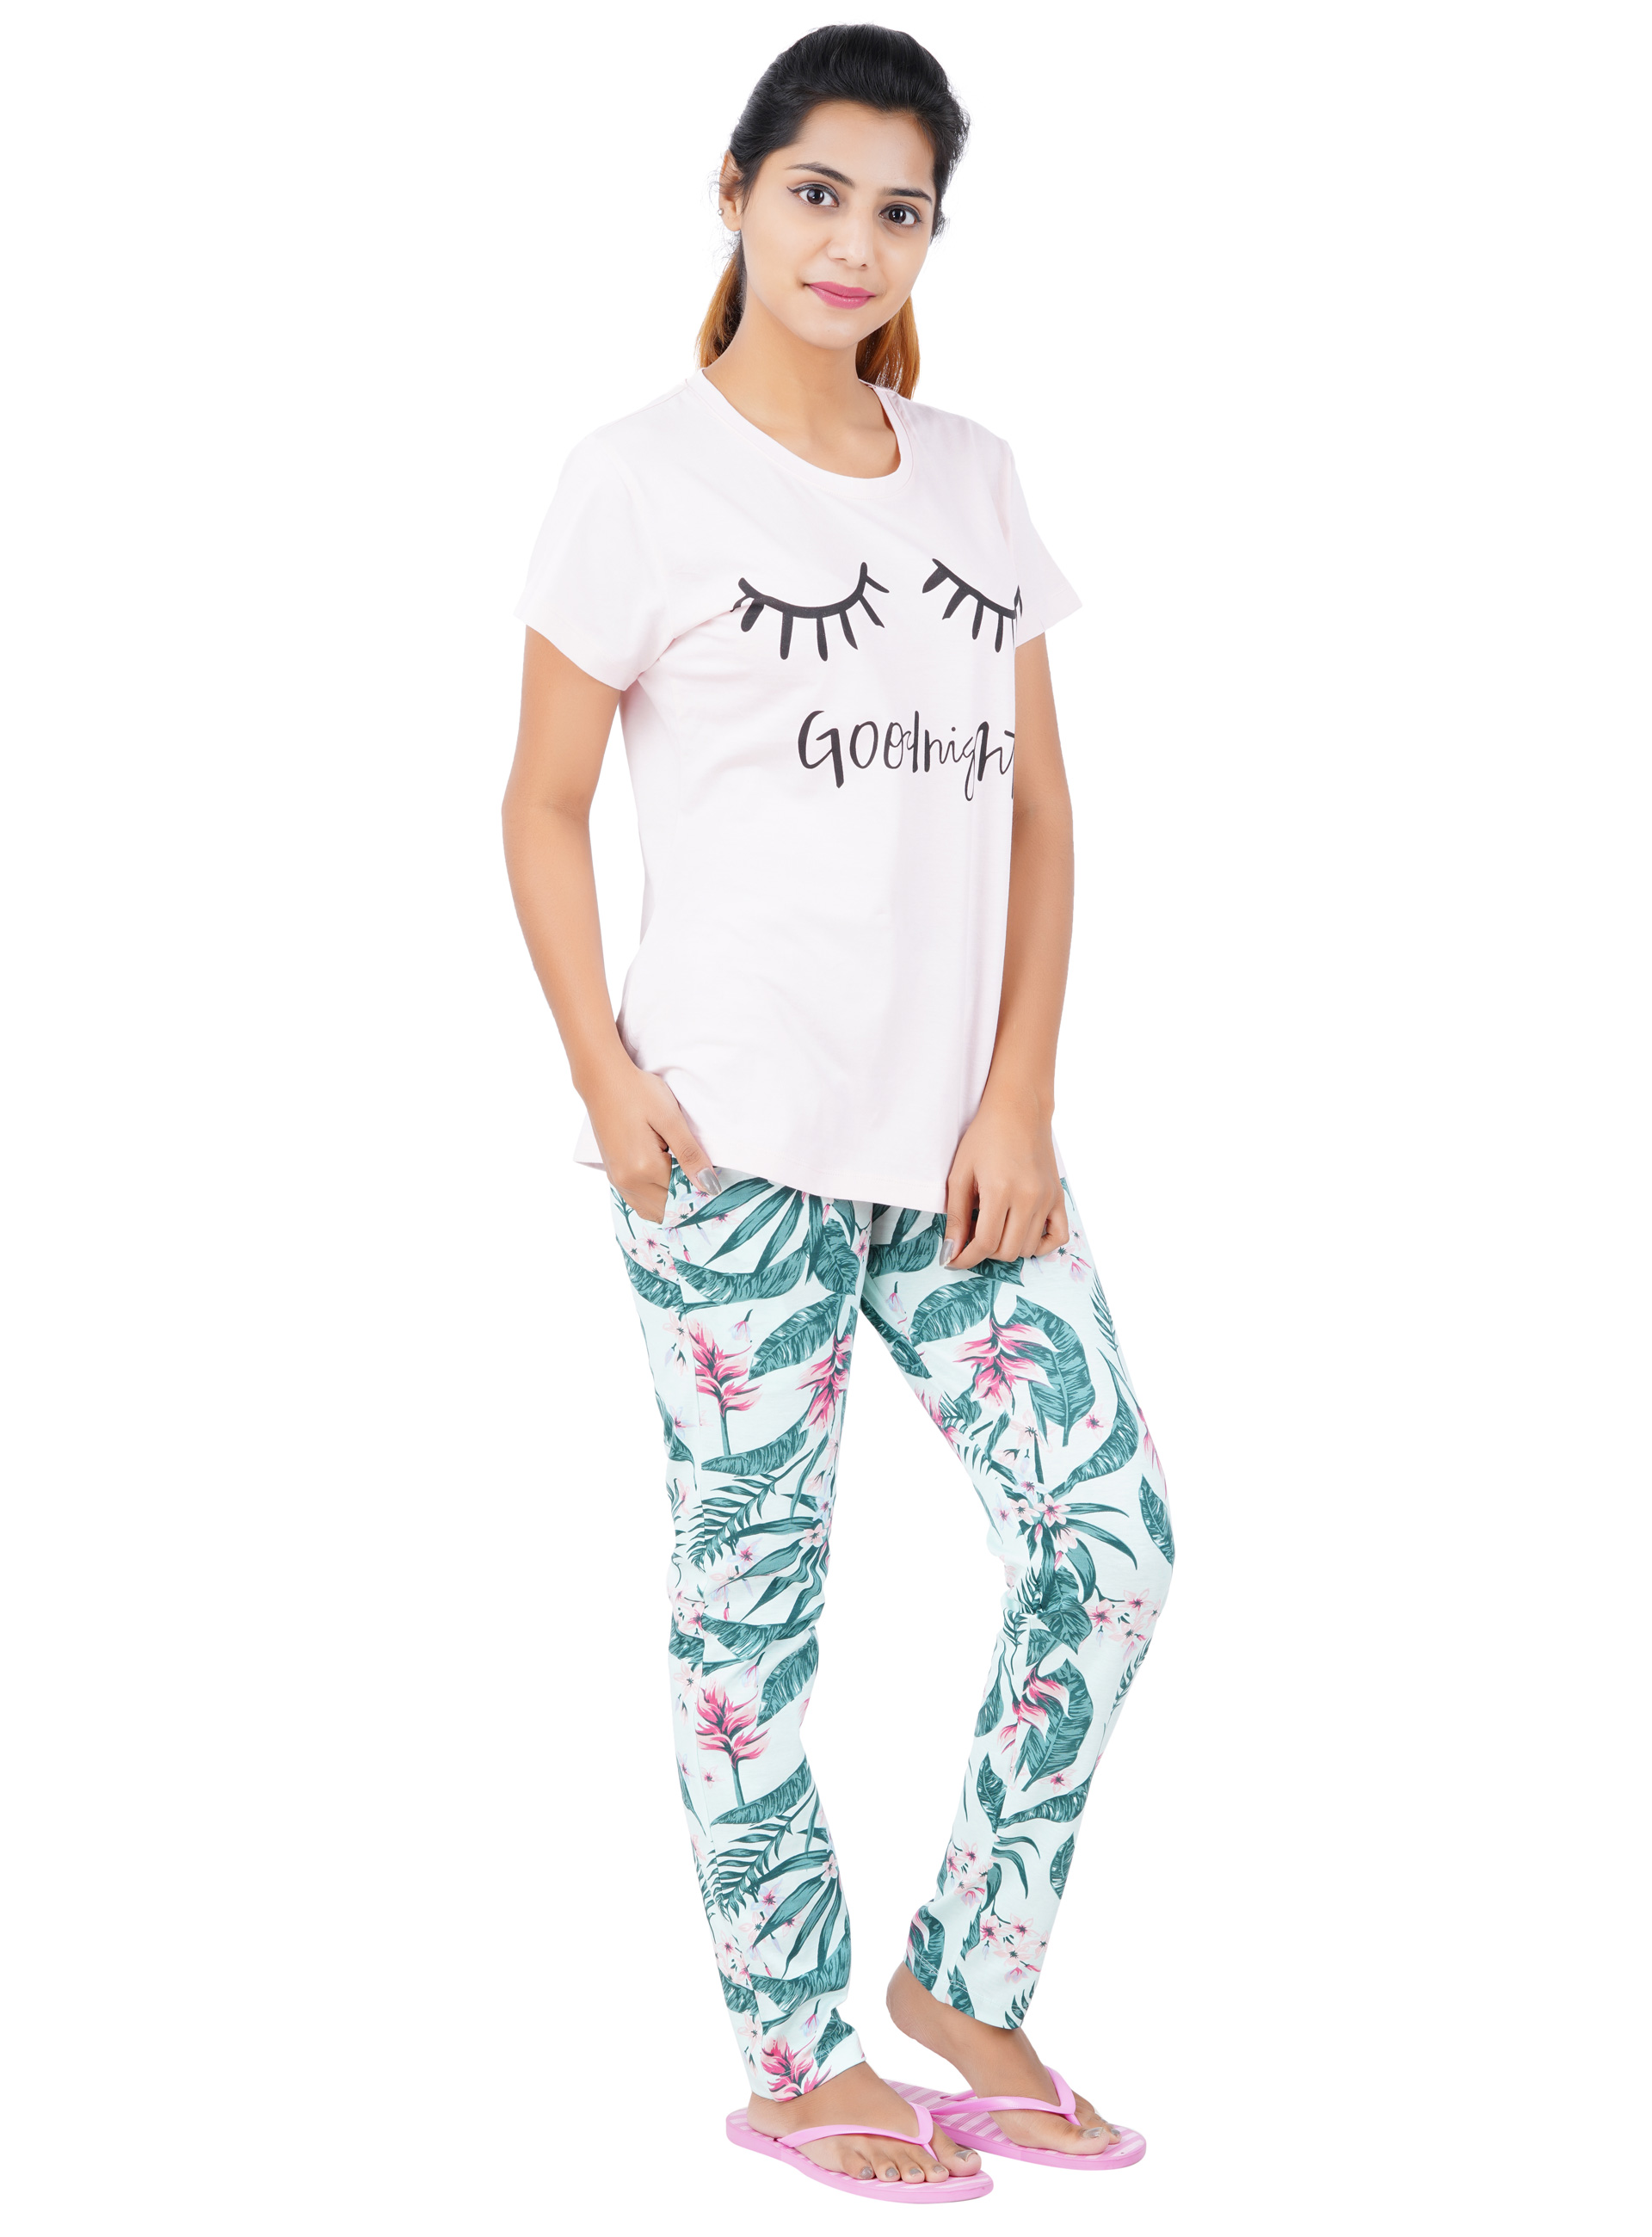 Aswati Pink Full Set Pyjama - Good Night